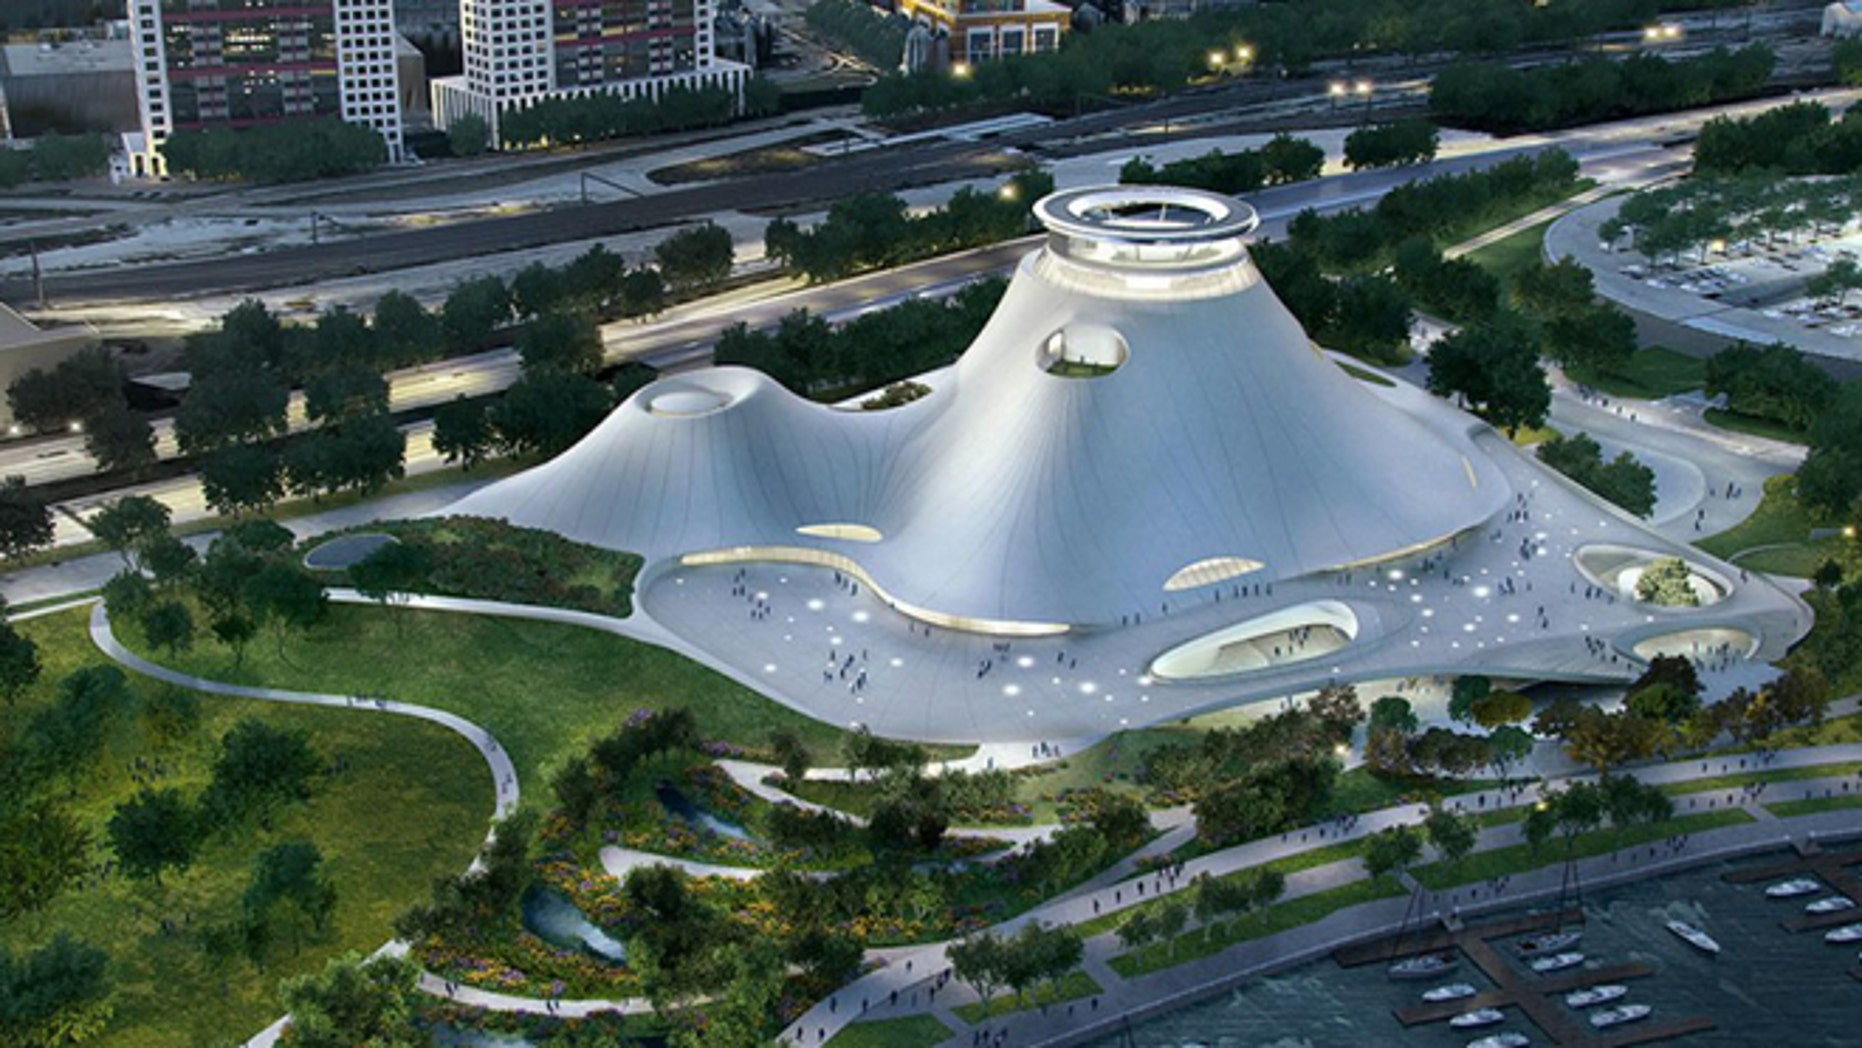 This rendering shows the proposed Lucas Museum of Narrative Art in Chicago.